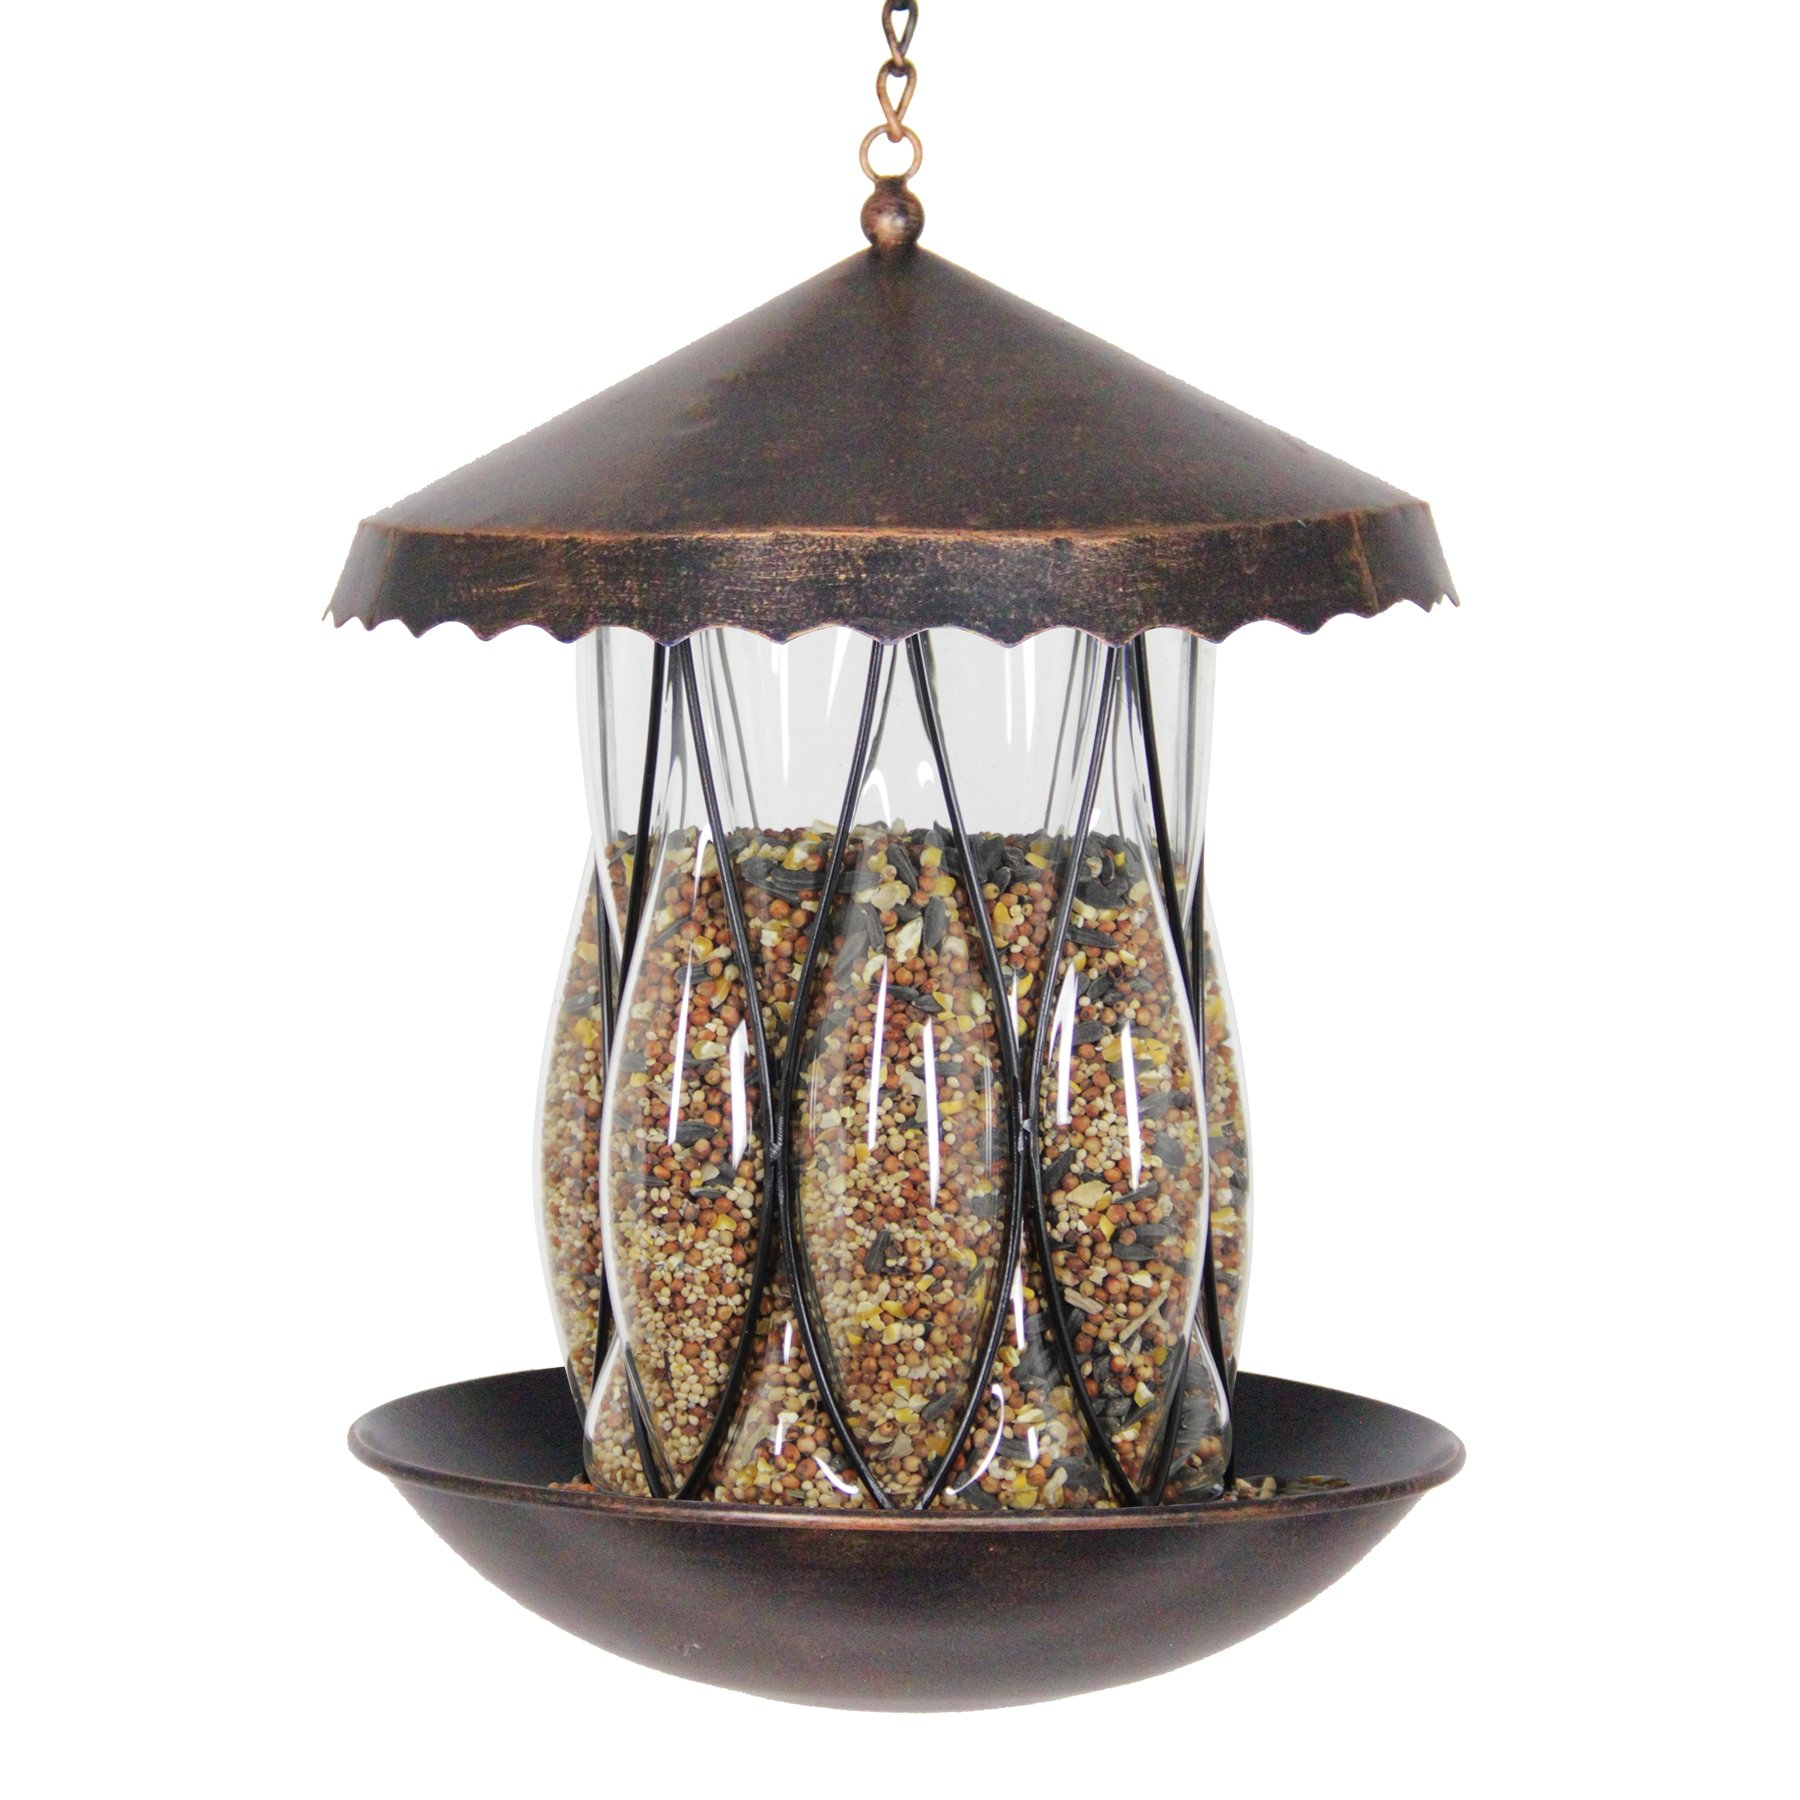 11 Inch Solar Bronze Bird Feeder - Diamond Glass Shape, Bird Feeder, Backyard/Outdoor / Garden